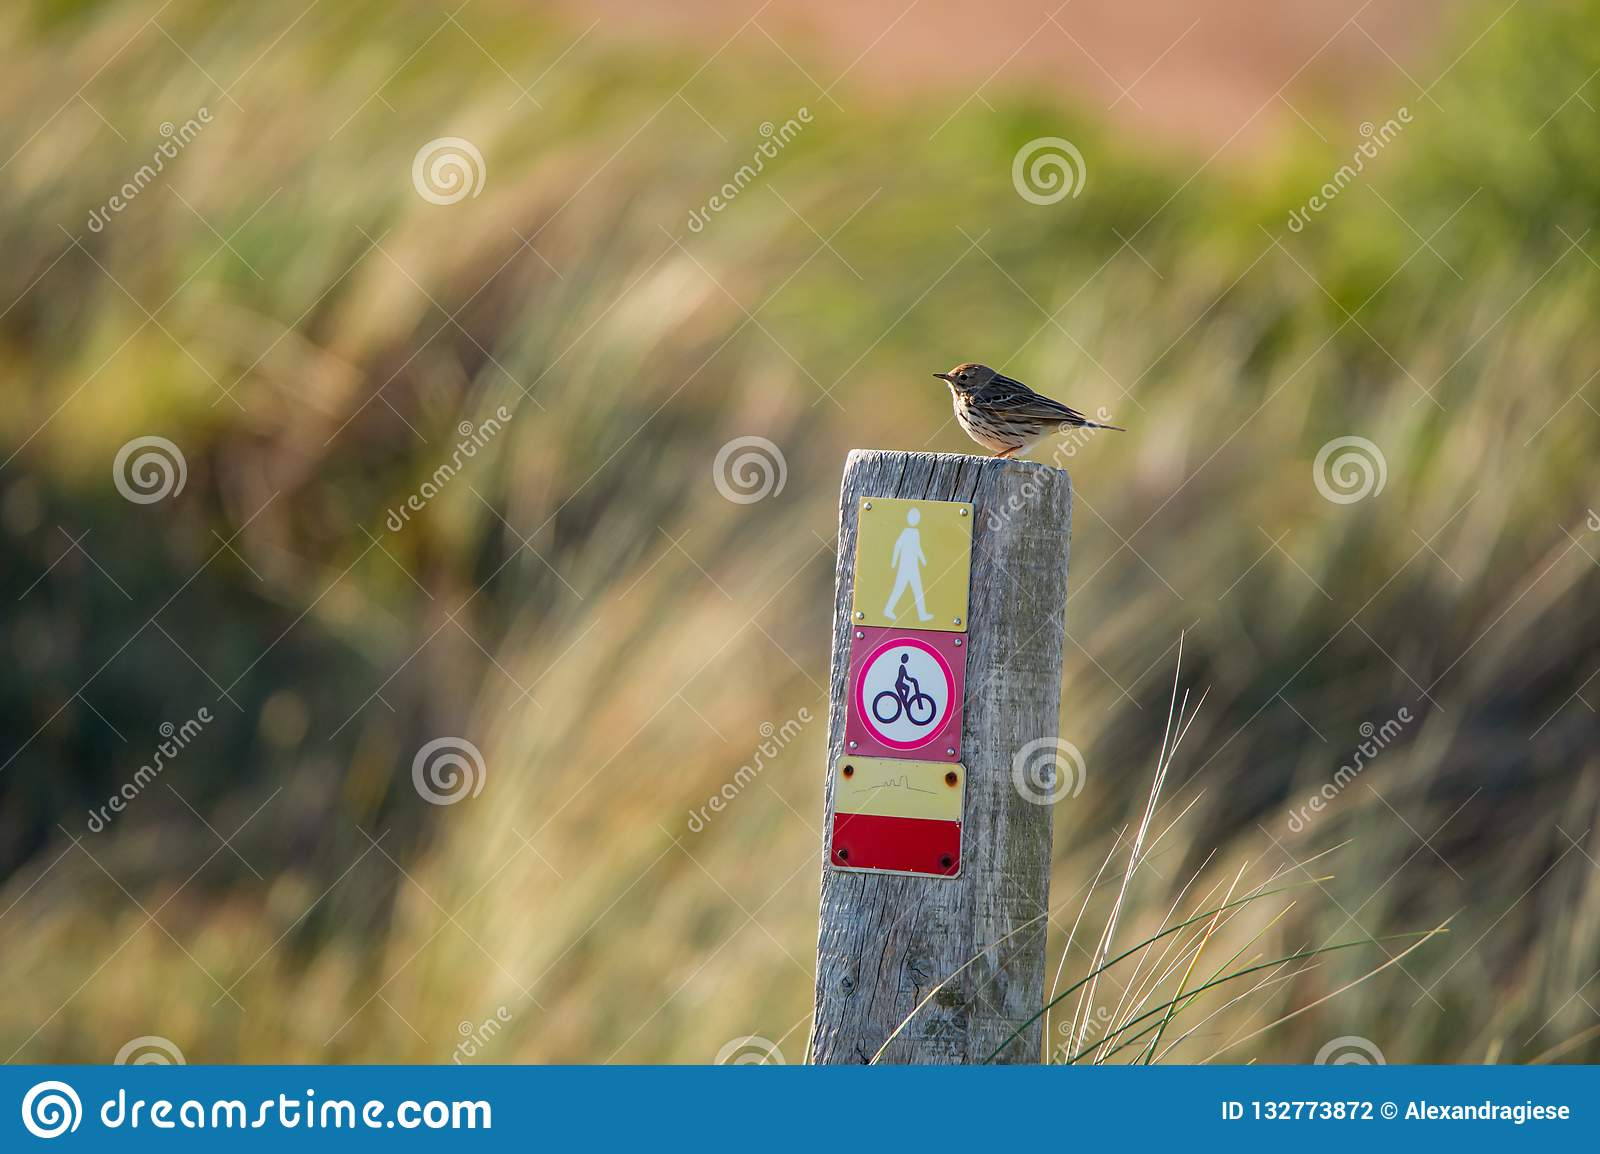 Little meadow pipit sitting on a wooden pile with icons on a colorful blurry background - Texel Netherlands